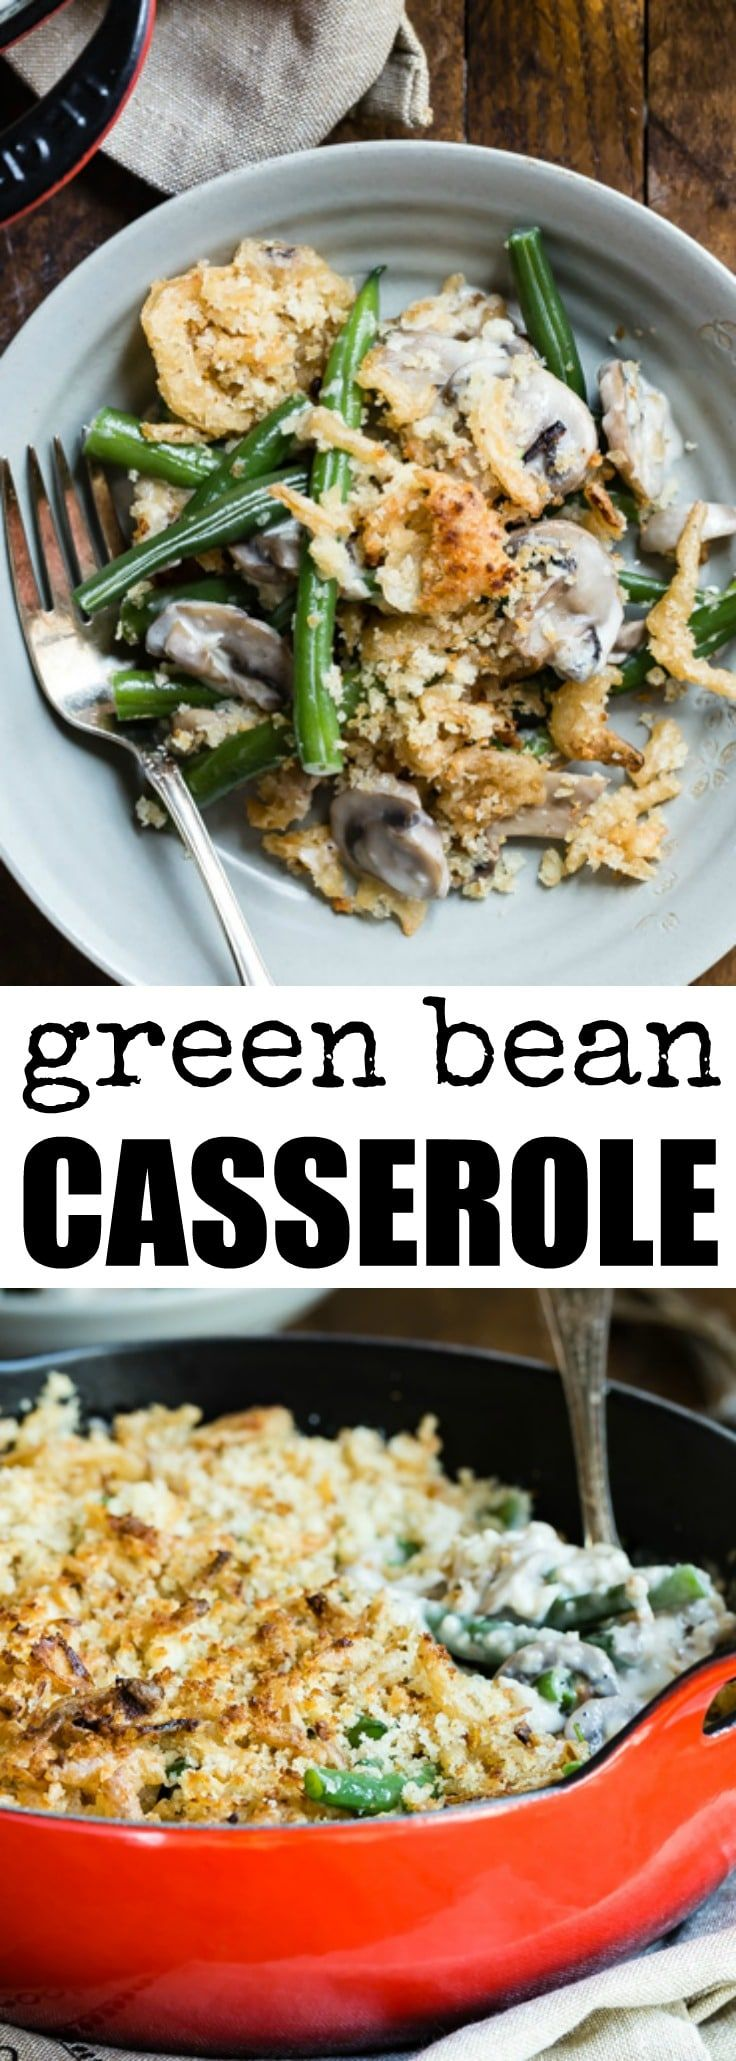 The Best Green Bean Casserole starts with fresh green beans, homemade mushroom cream sauce, and a crunchy bread crumb-fried onion topping.